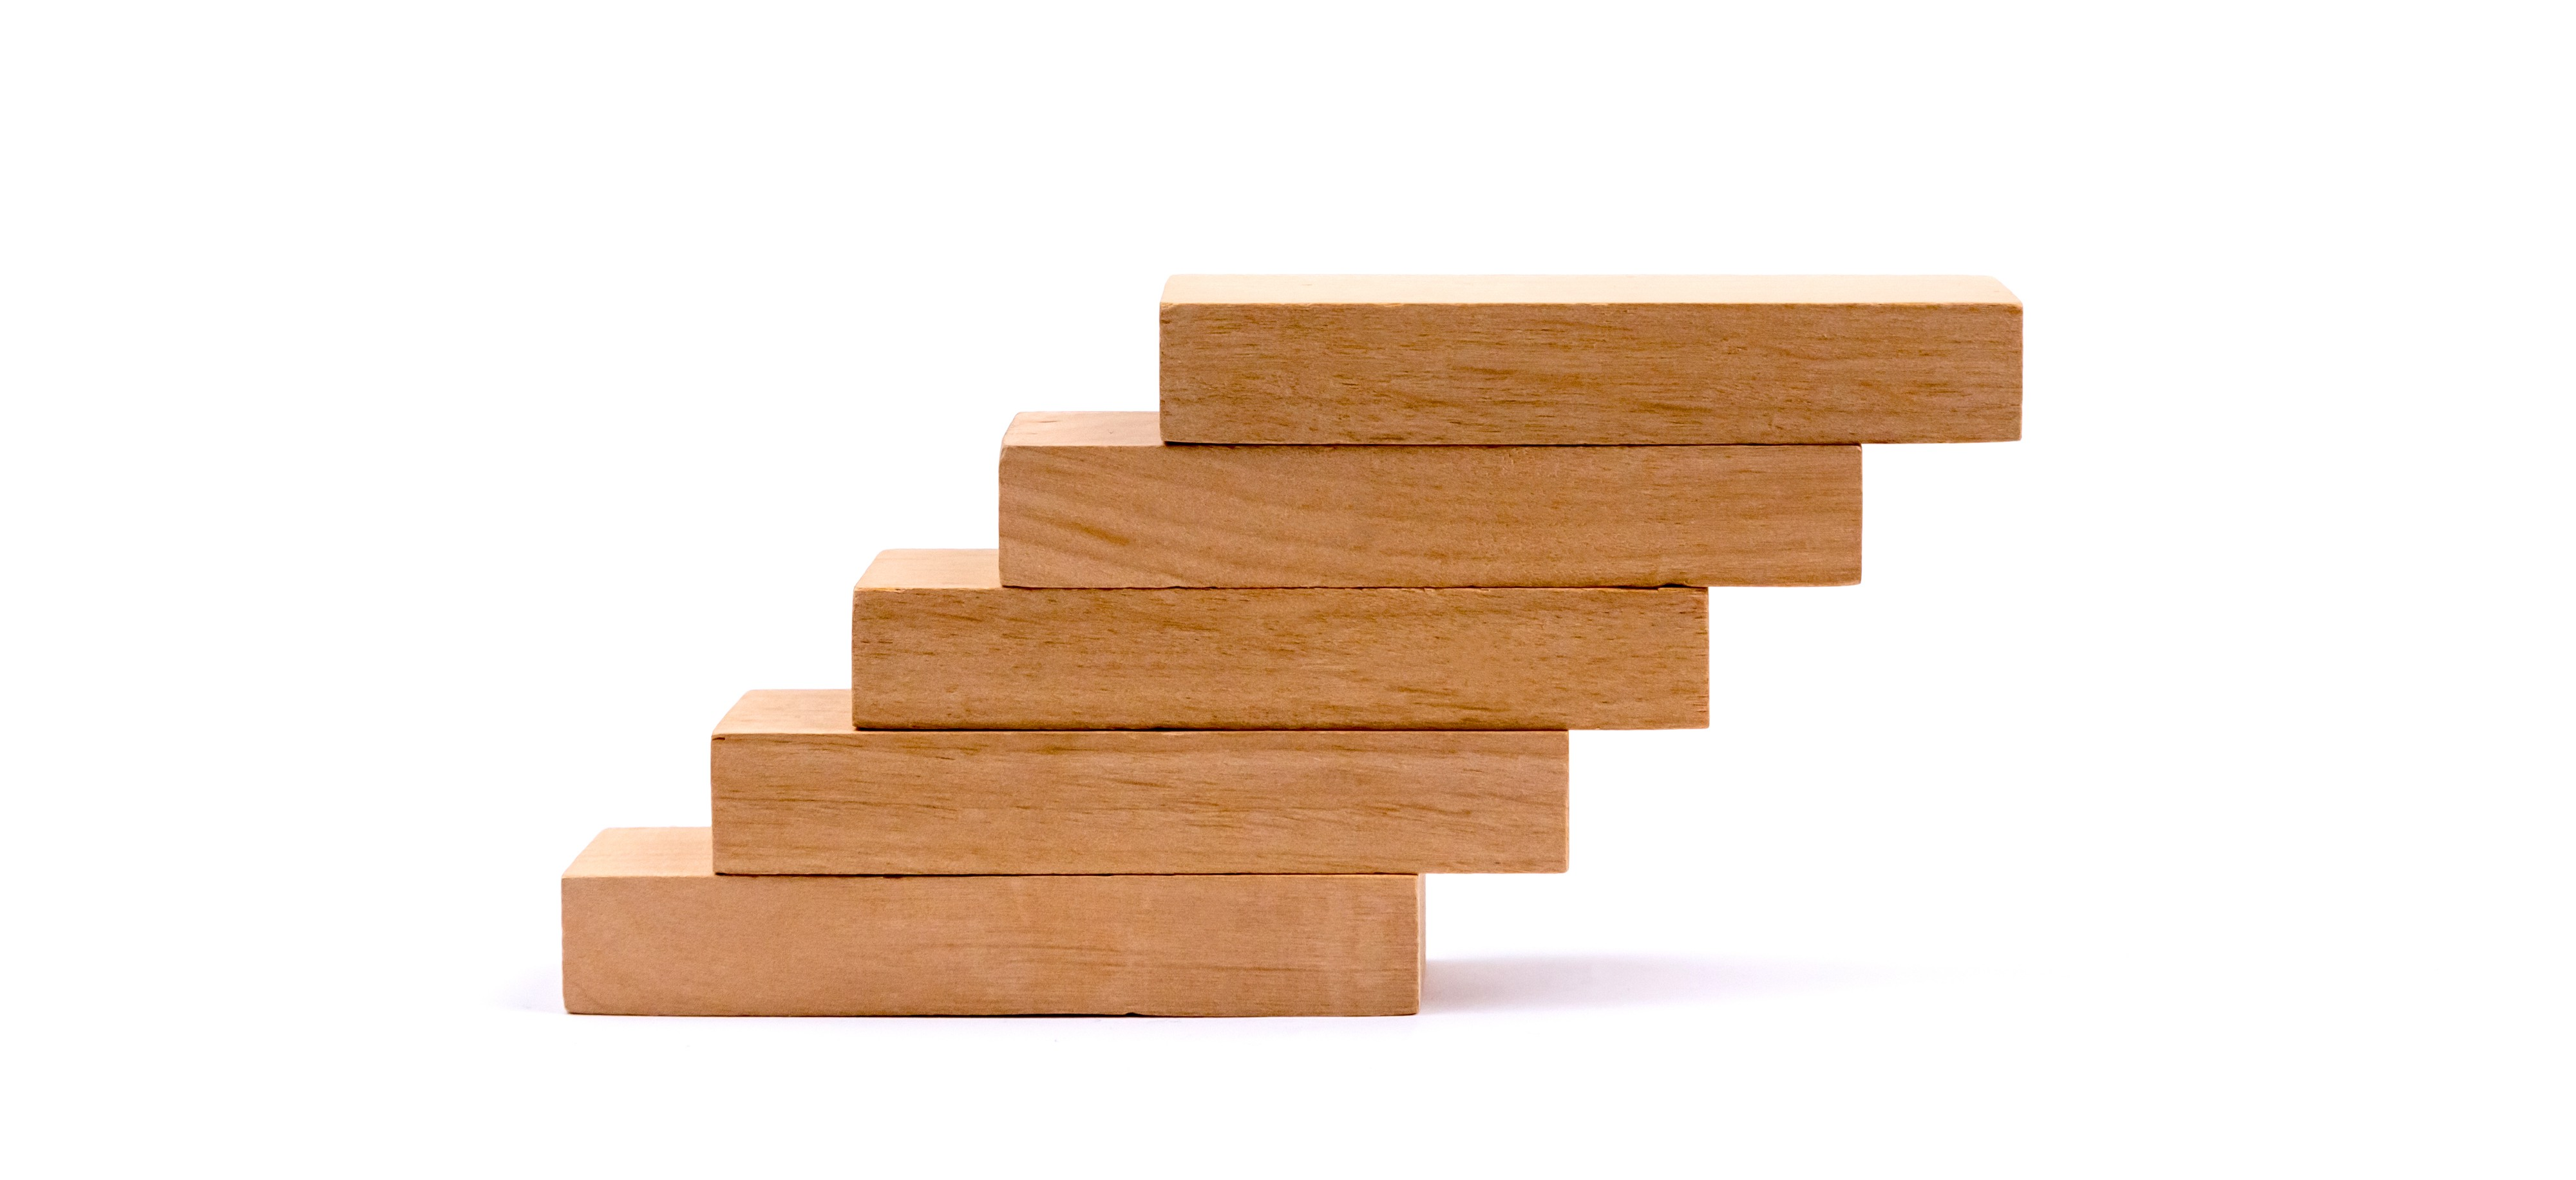 A series of wooden blocks stacked like stairs on an angle.